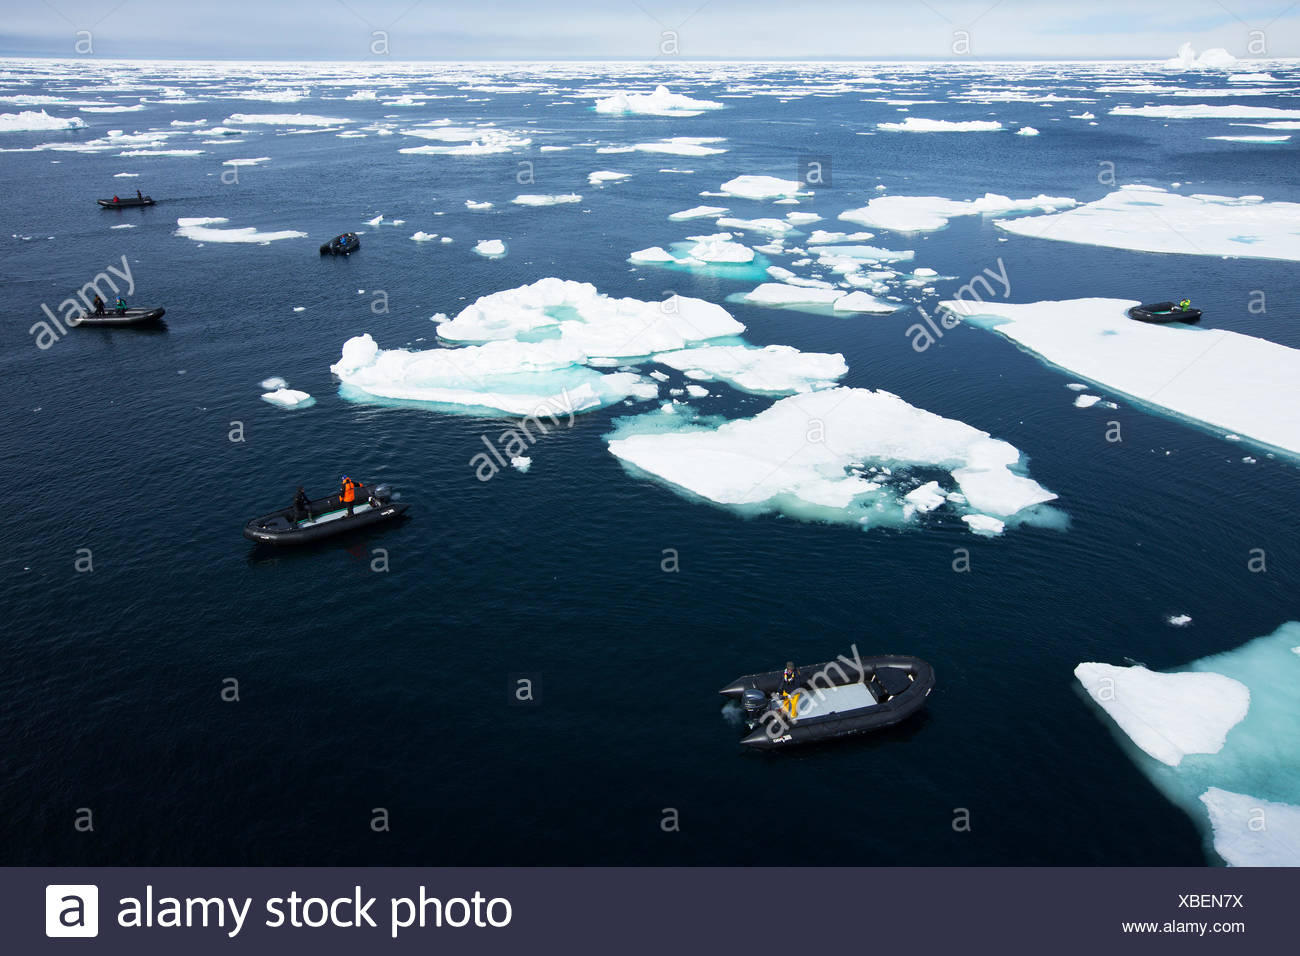 A tourist cruise ship near an ice berg off the coast of Baffin Island, Nunavut, in the Canadian arctic. - Stock Image